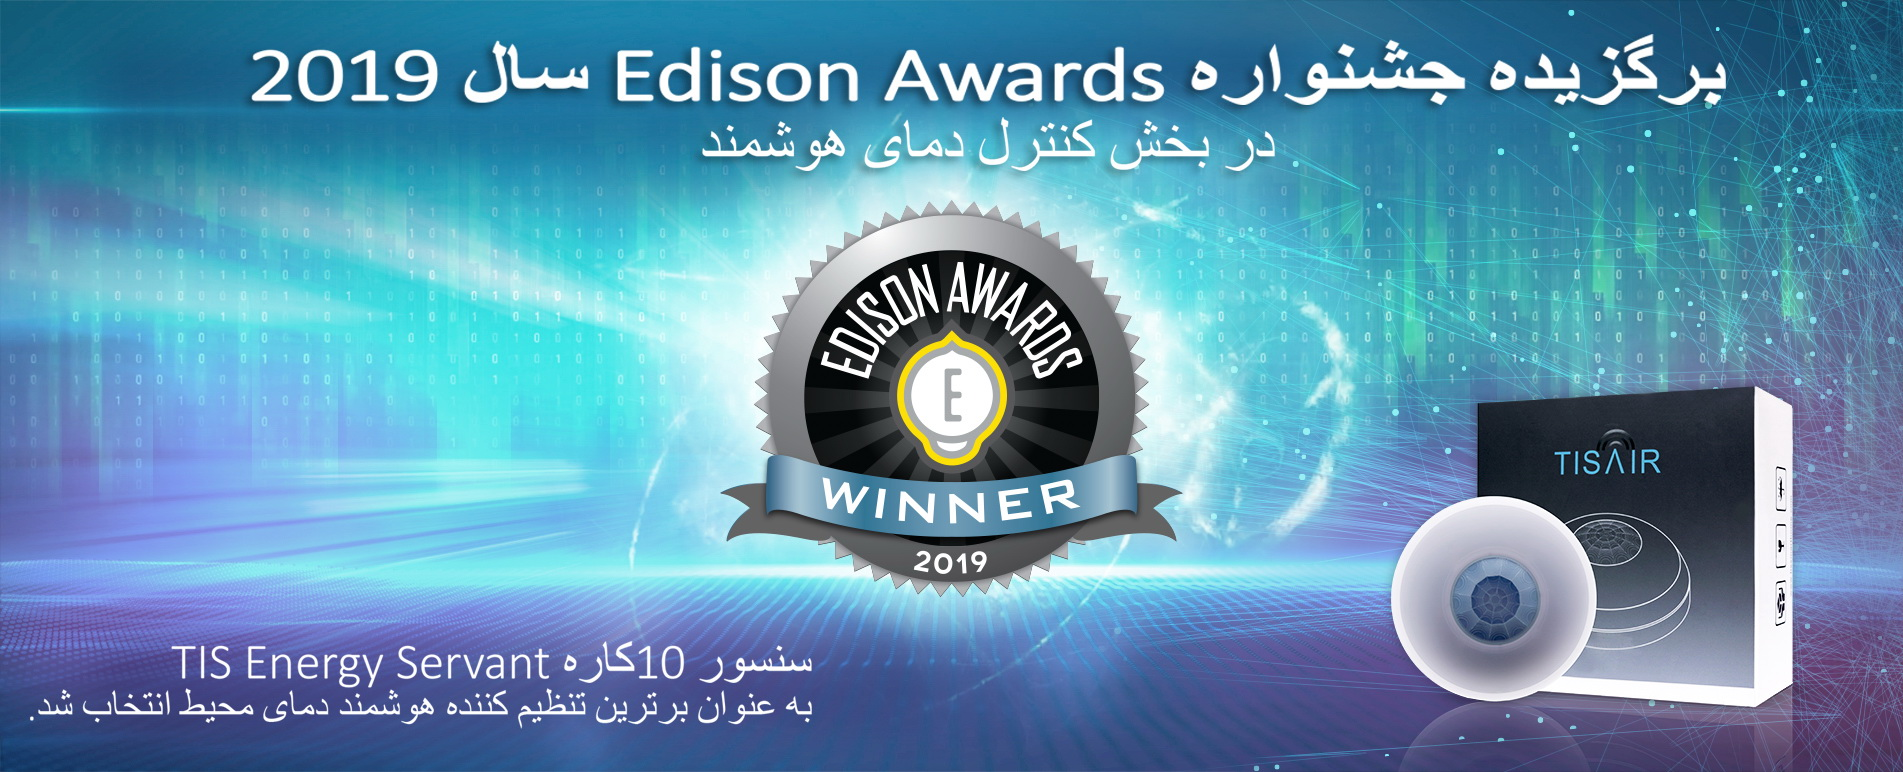 Edison Awards tech